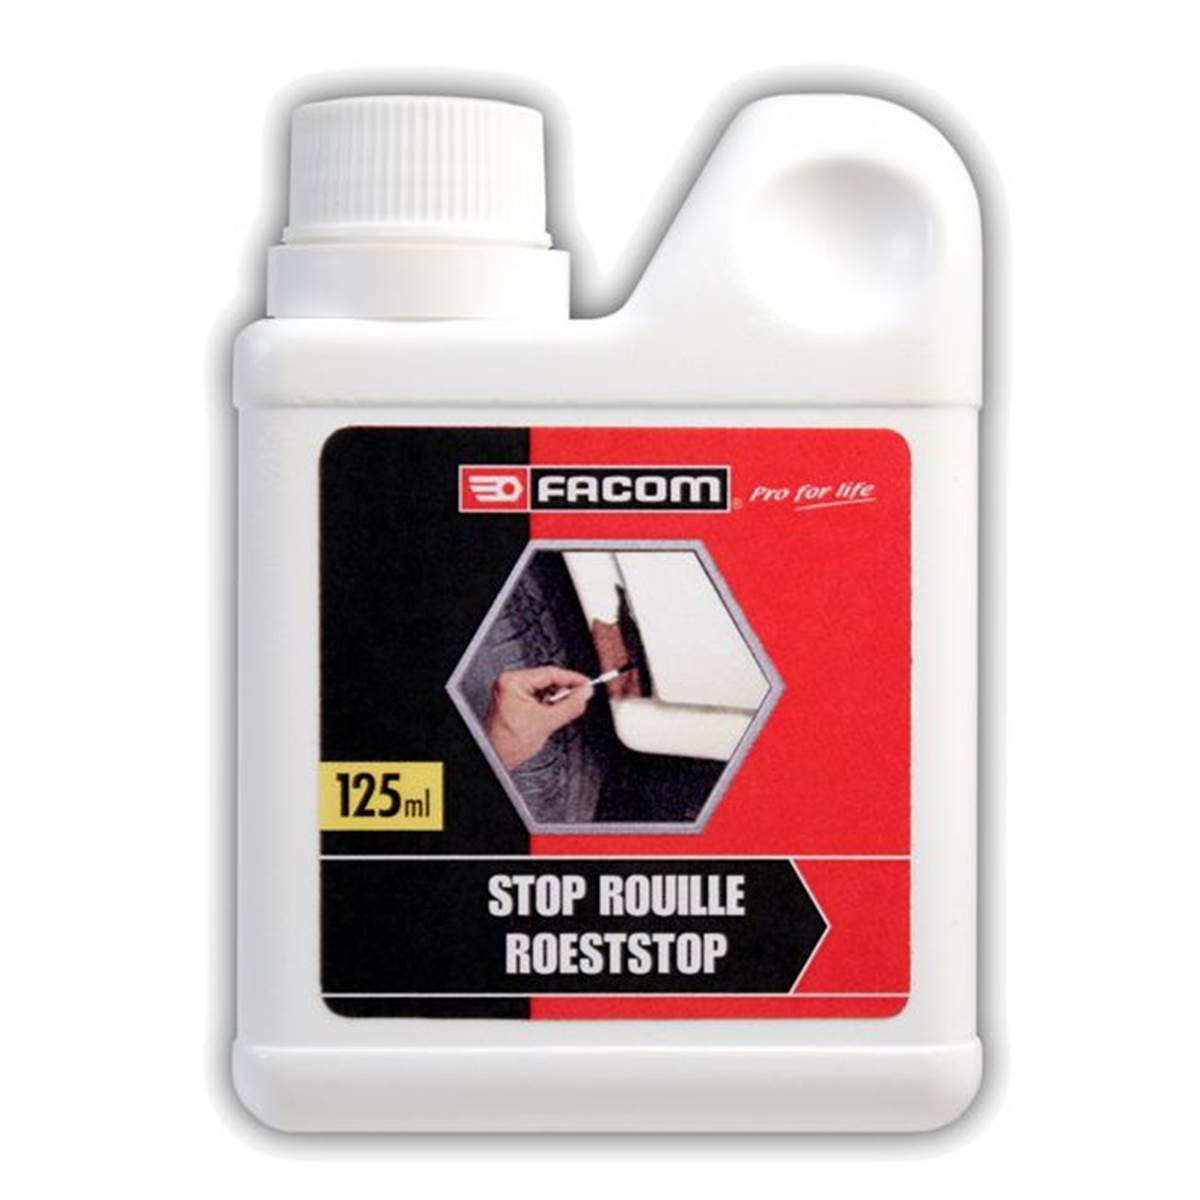 Stop-rouille Facom 125 ml